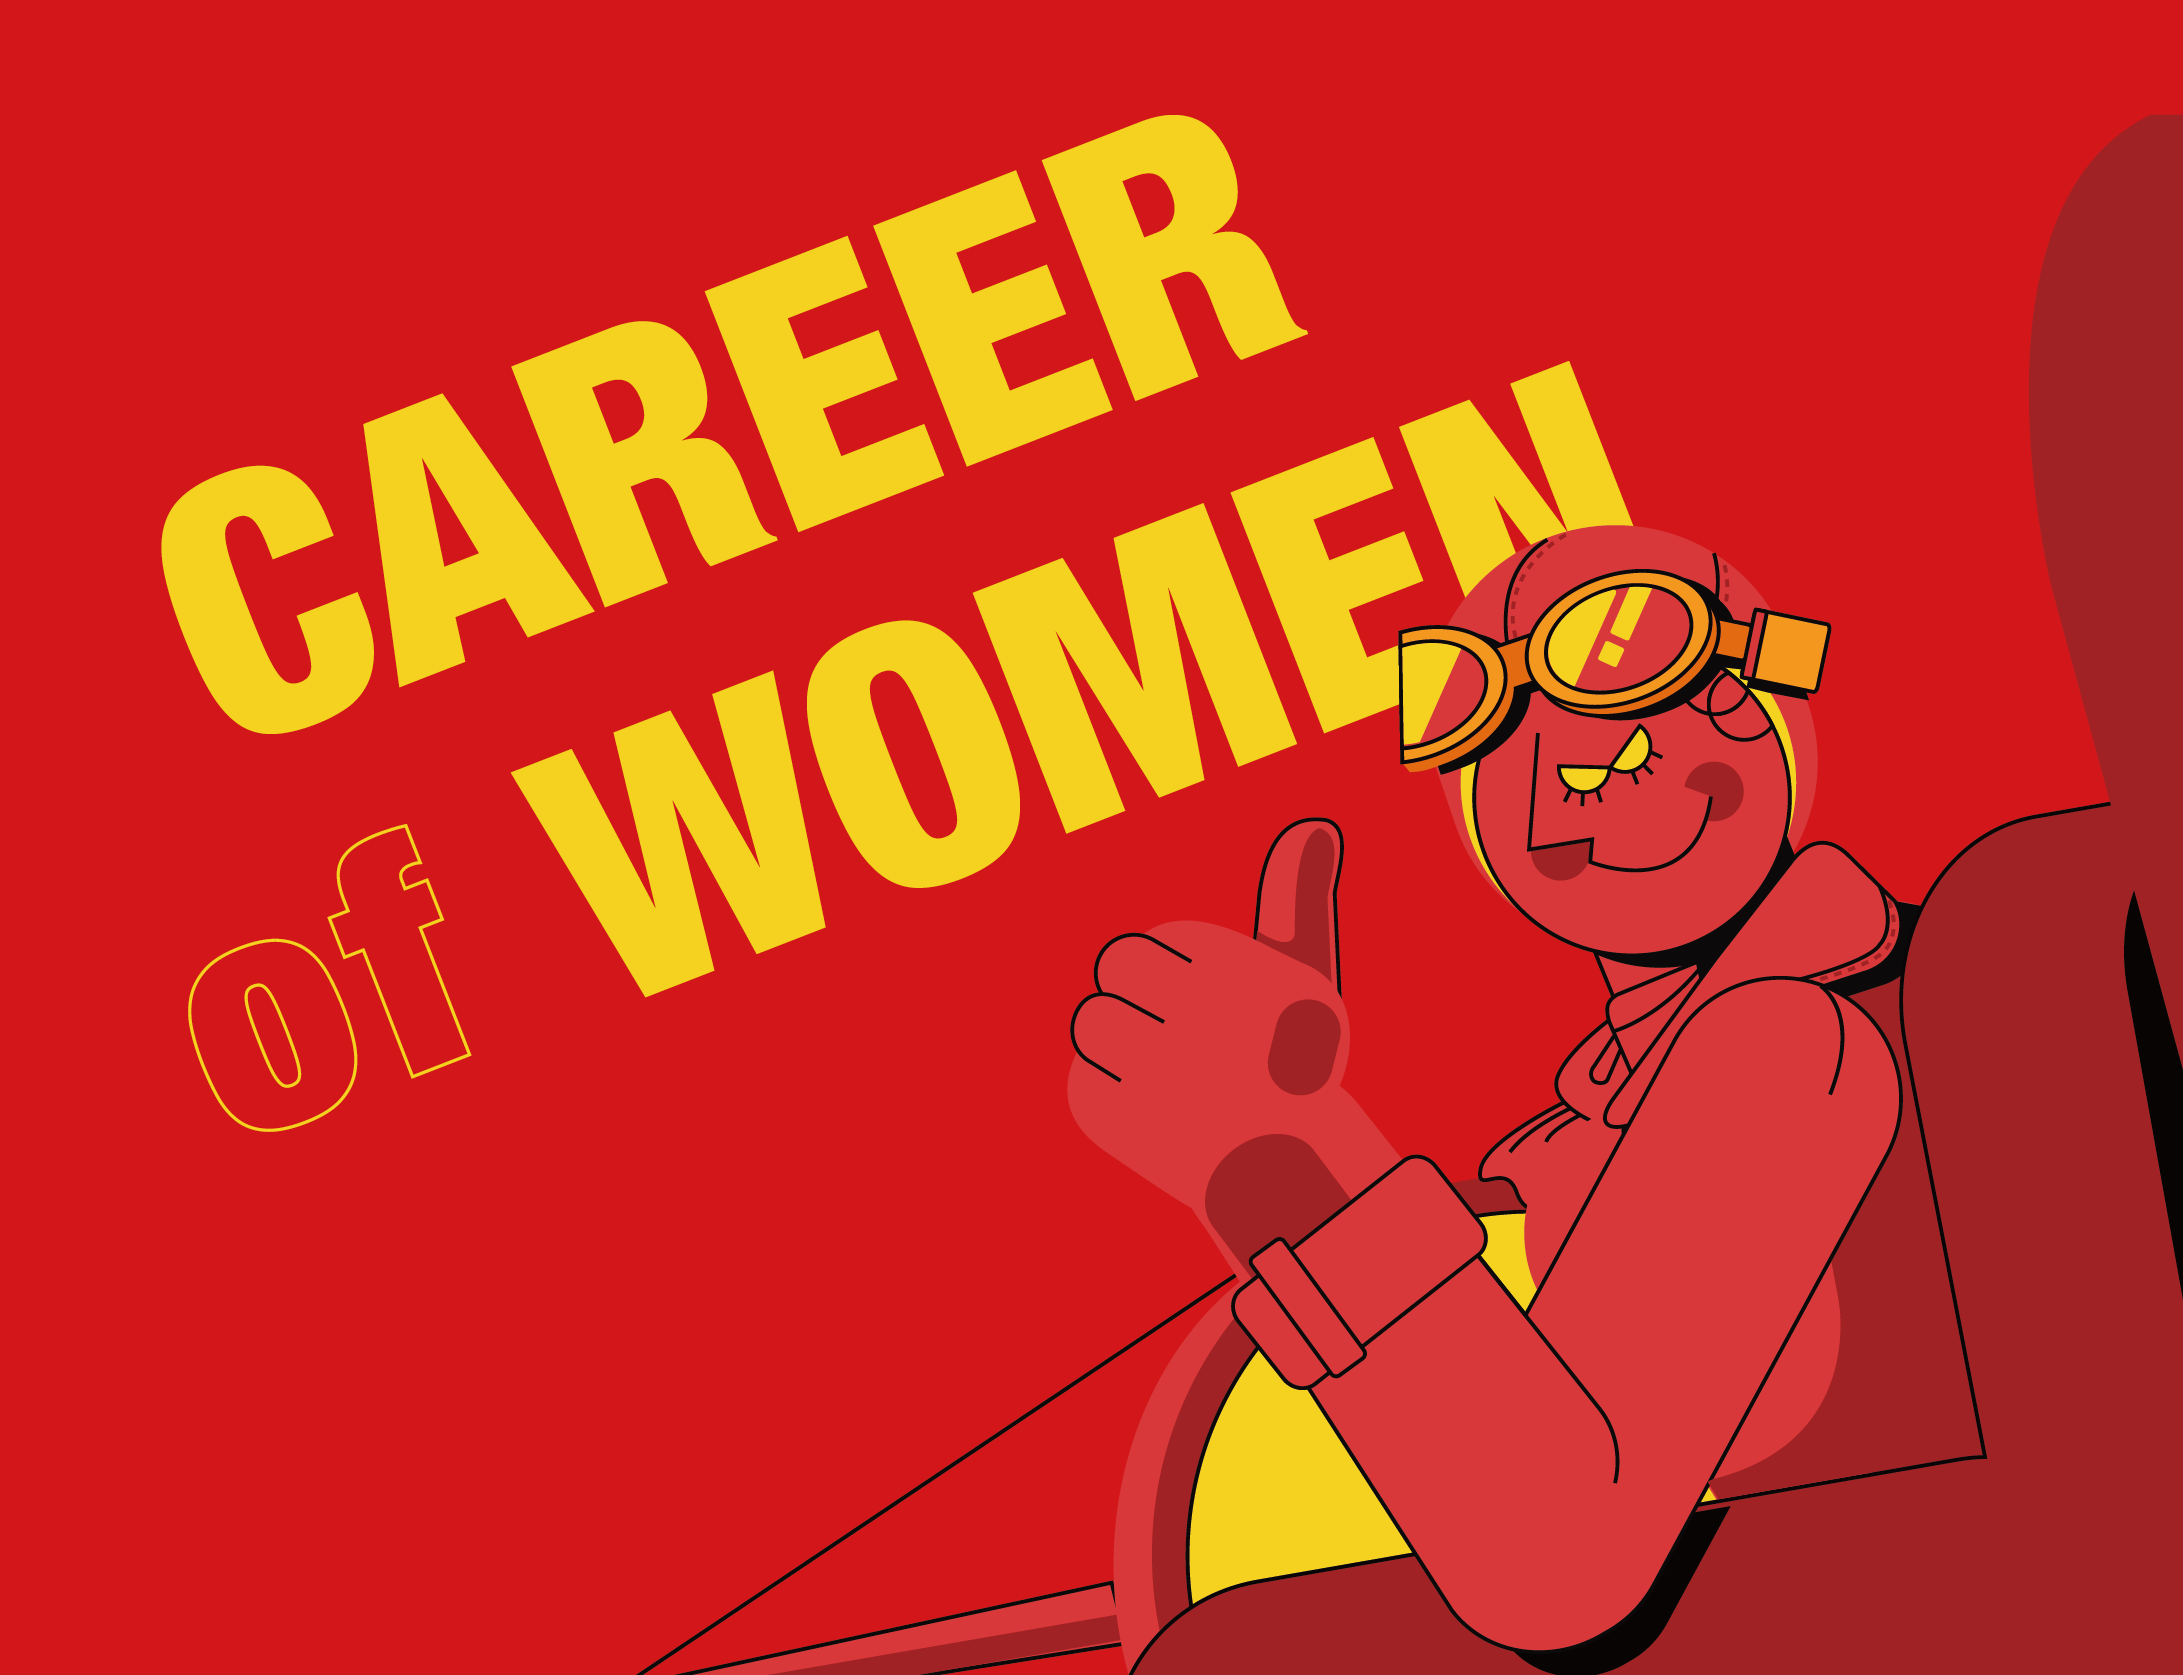 CAREER (of) WOMAN!